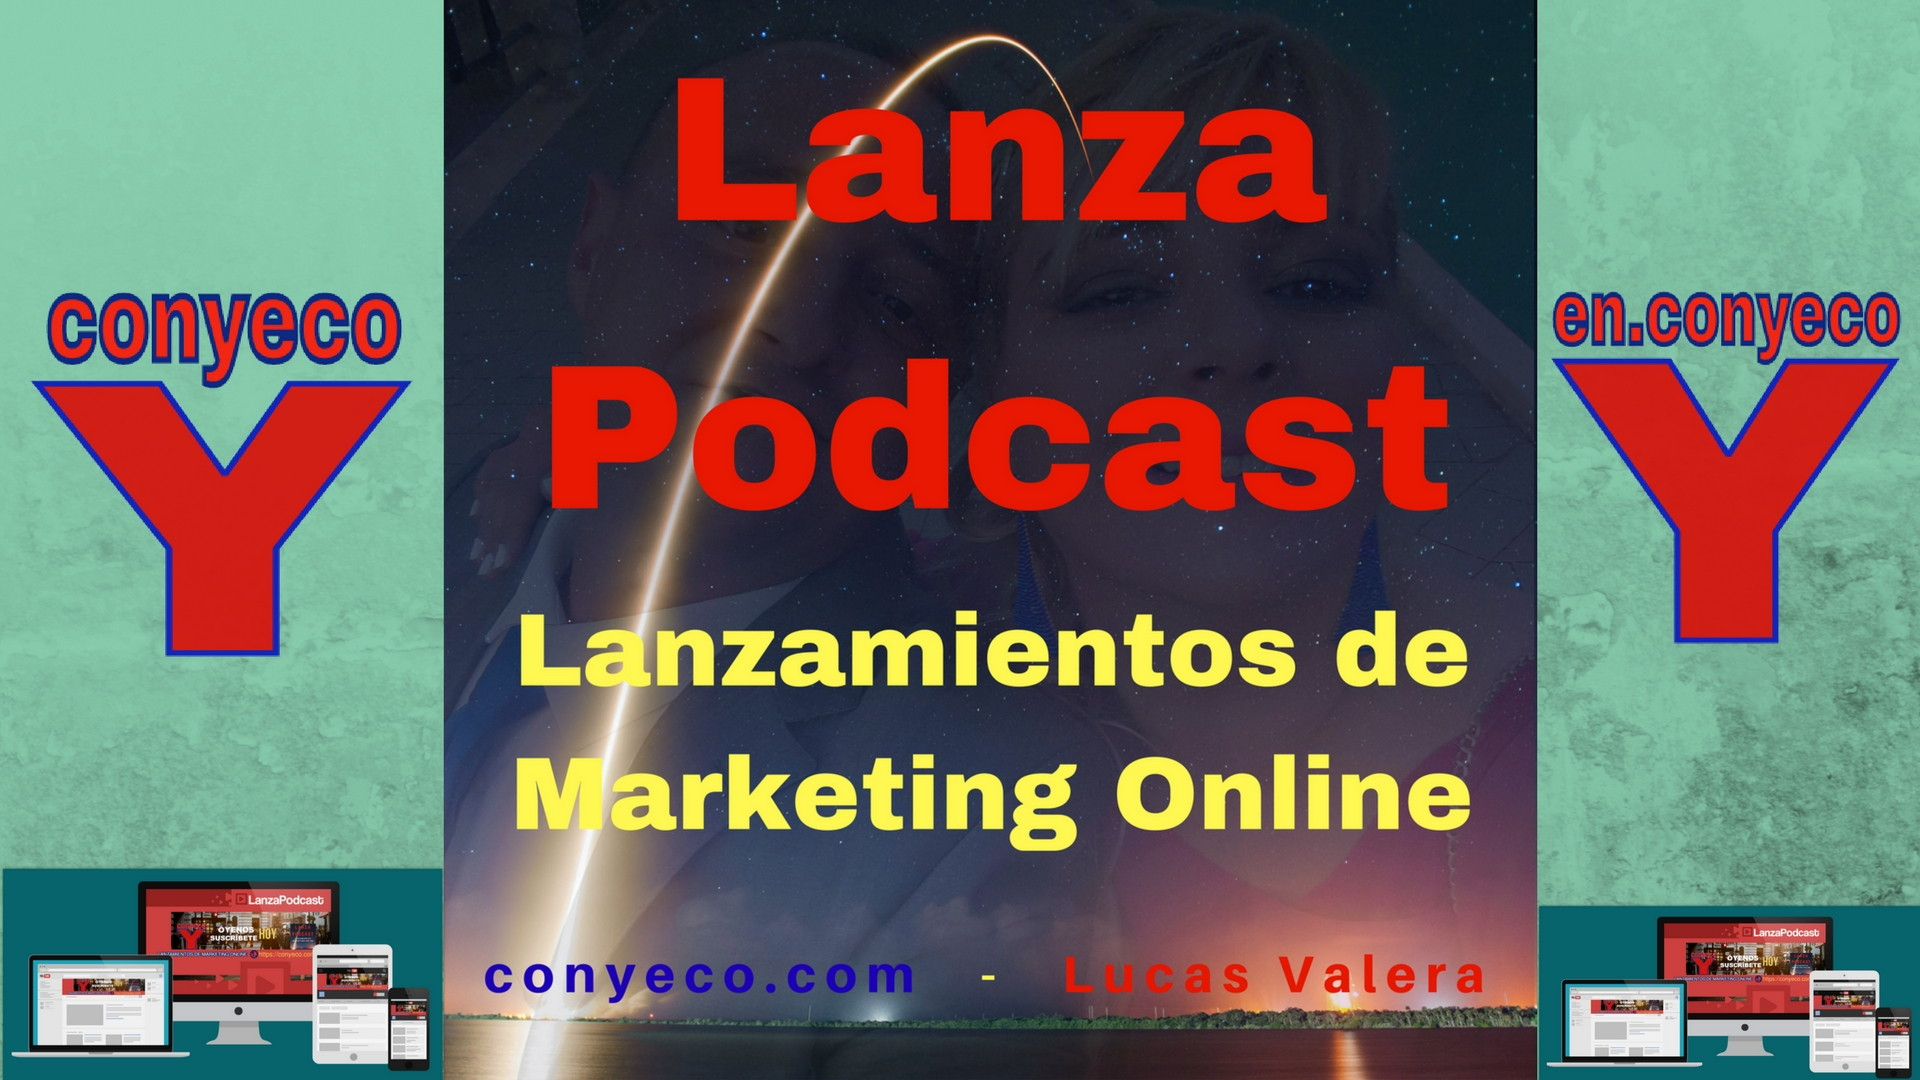 LanzaPodcast-Lanzamientos-Marketing-Online-conyeco-Lucas-Valera